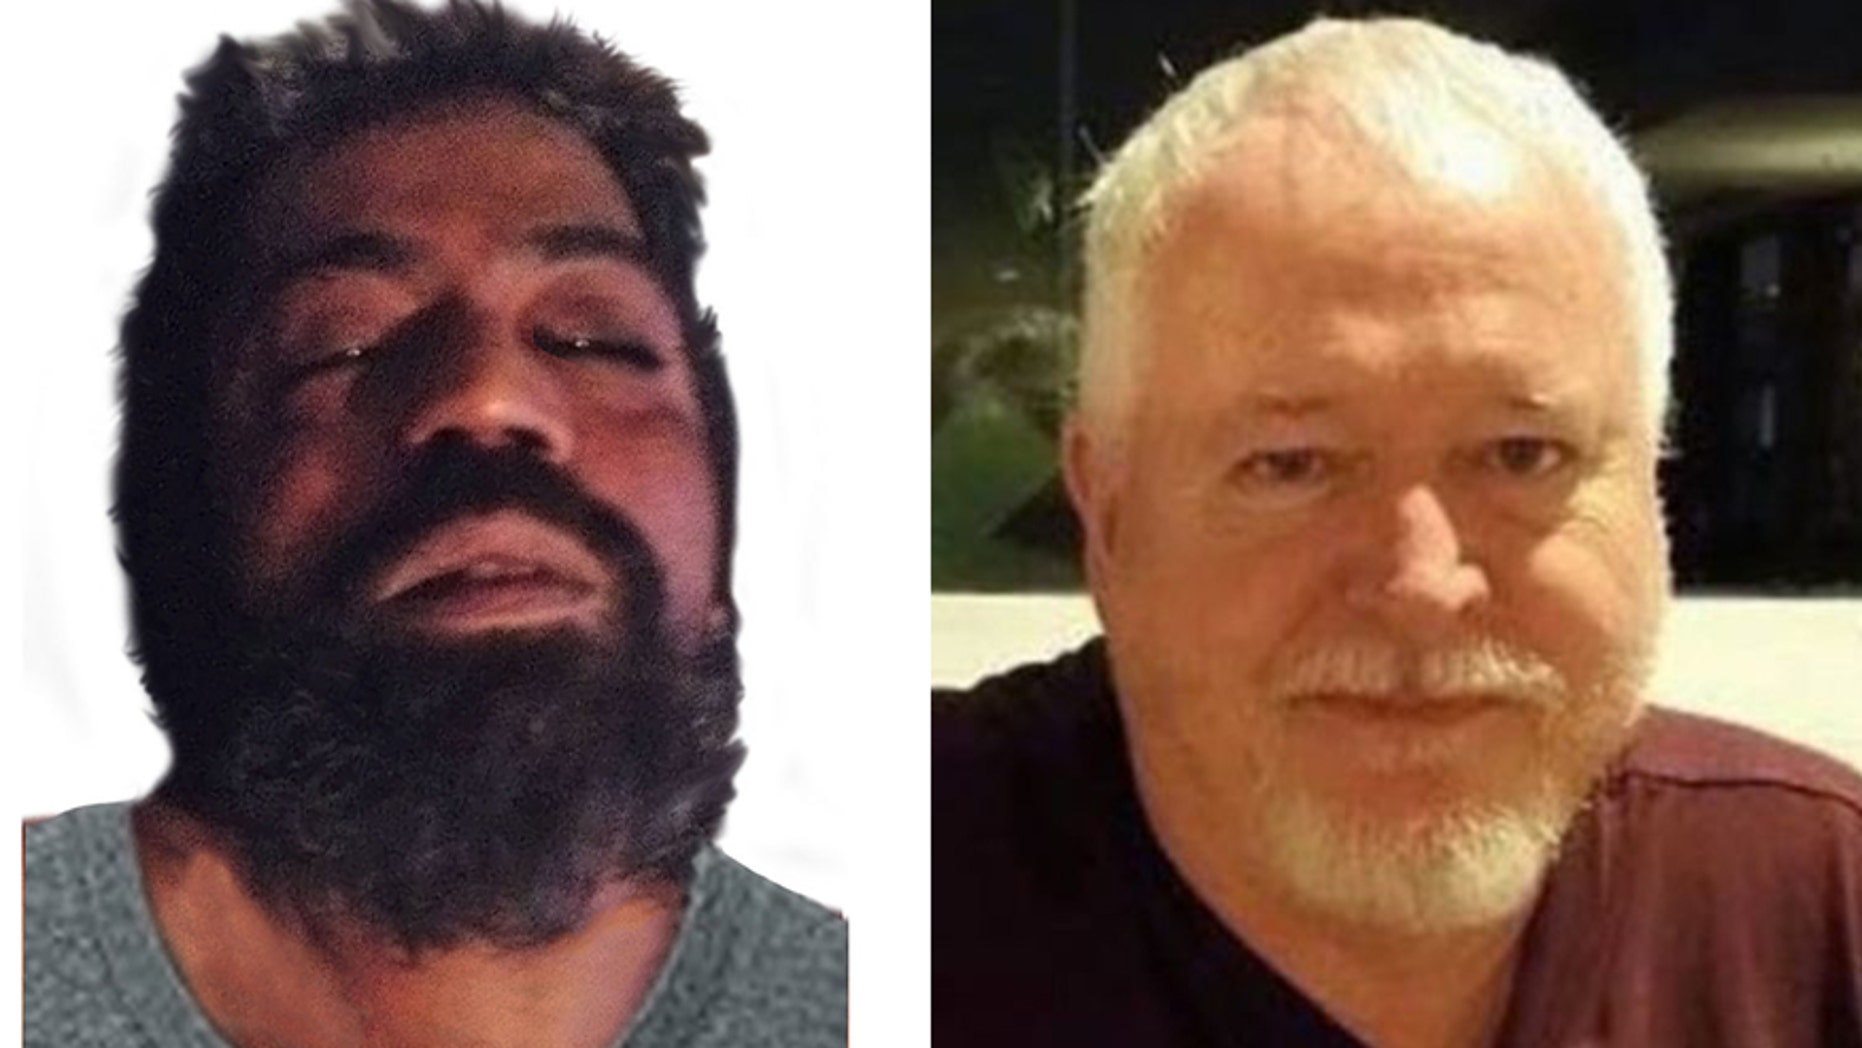 Toronto Police say Bruce McArthur, right, has now been charged in the murder of Kirushna Kumar Kanagaratnam, left.